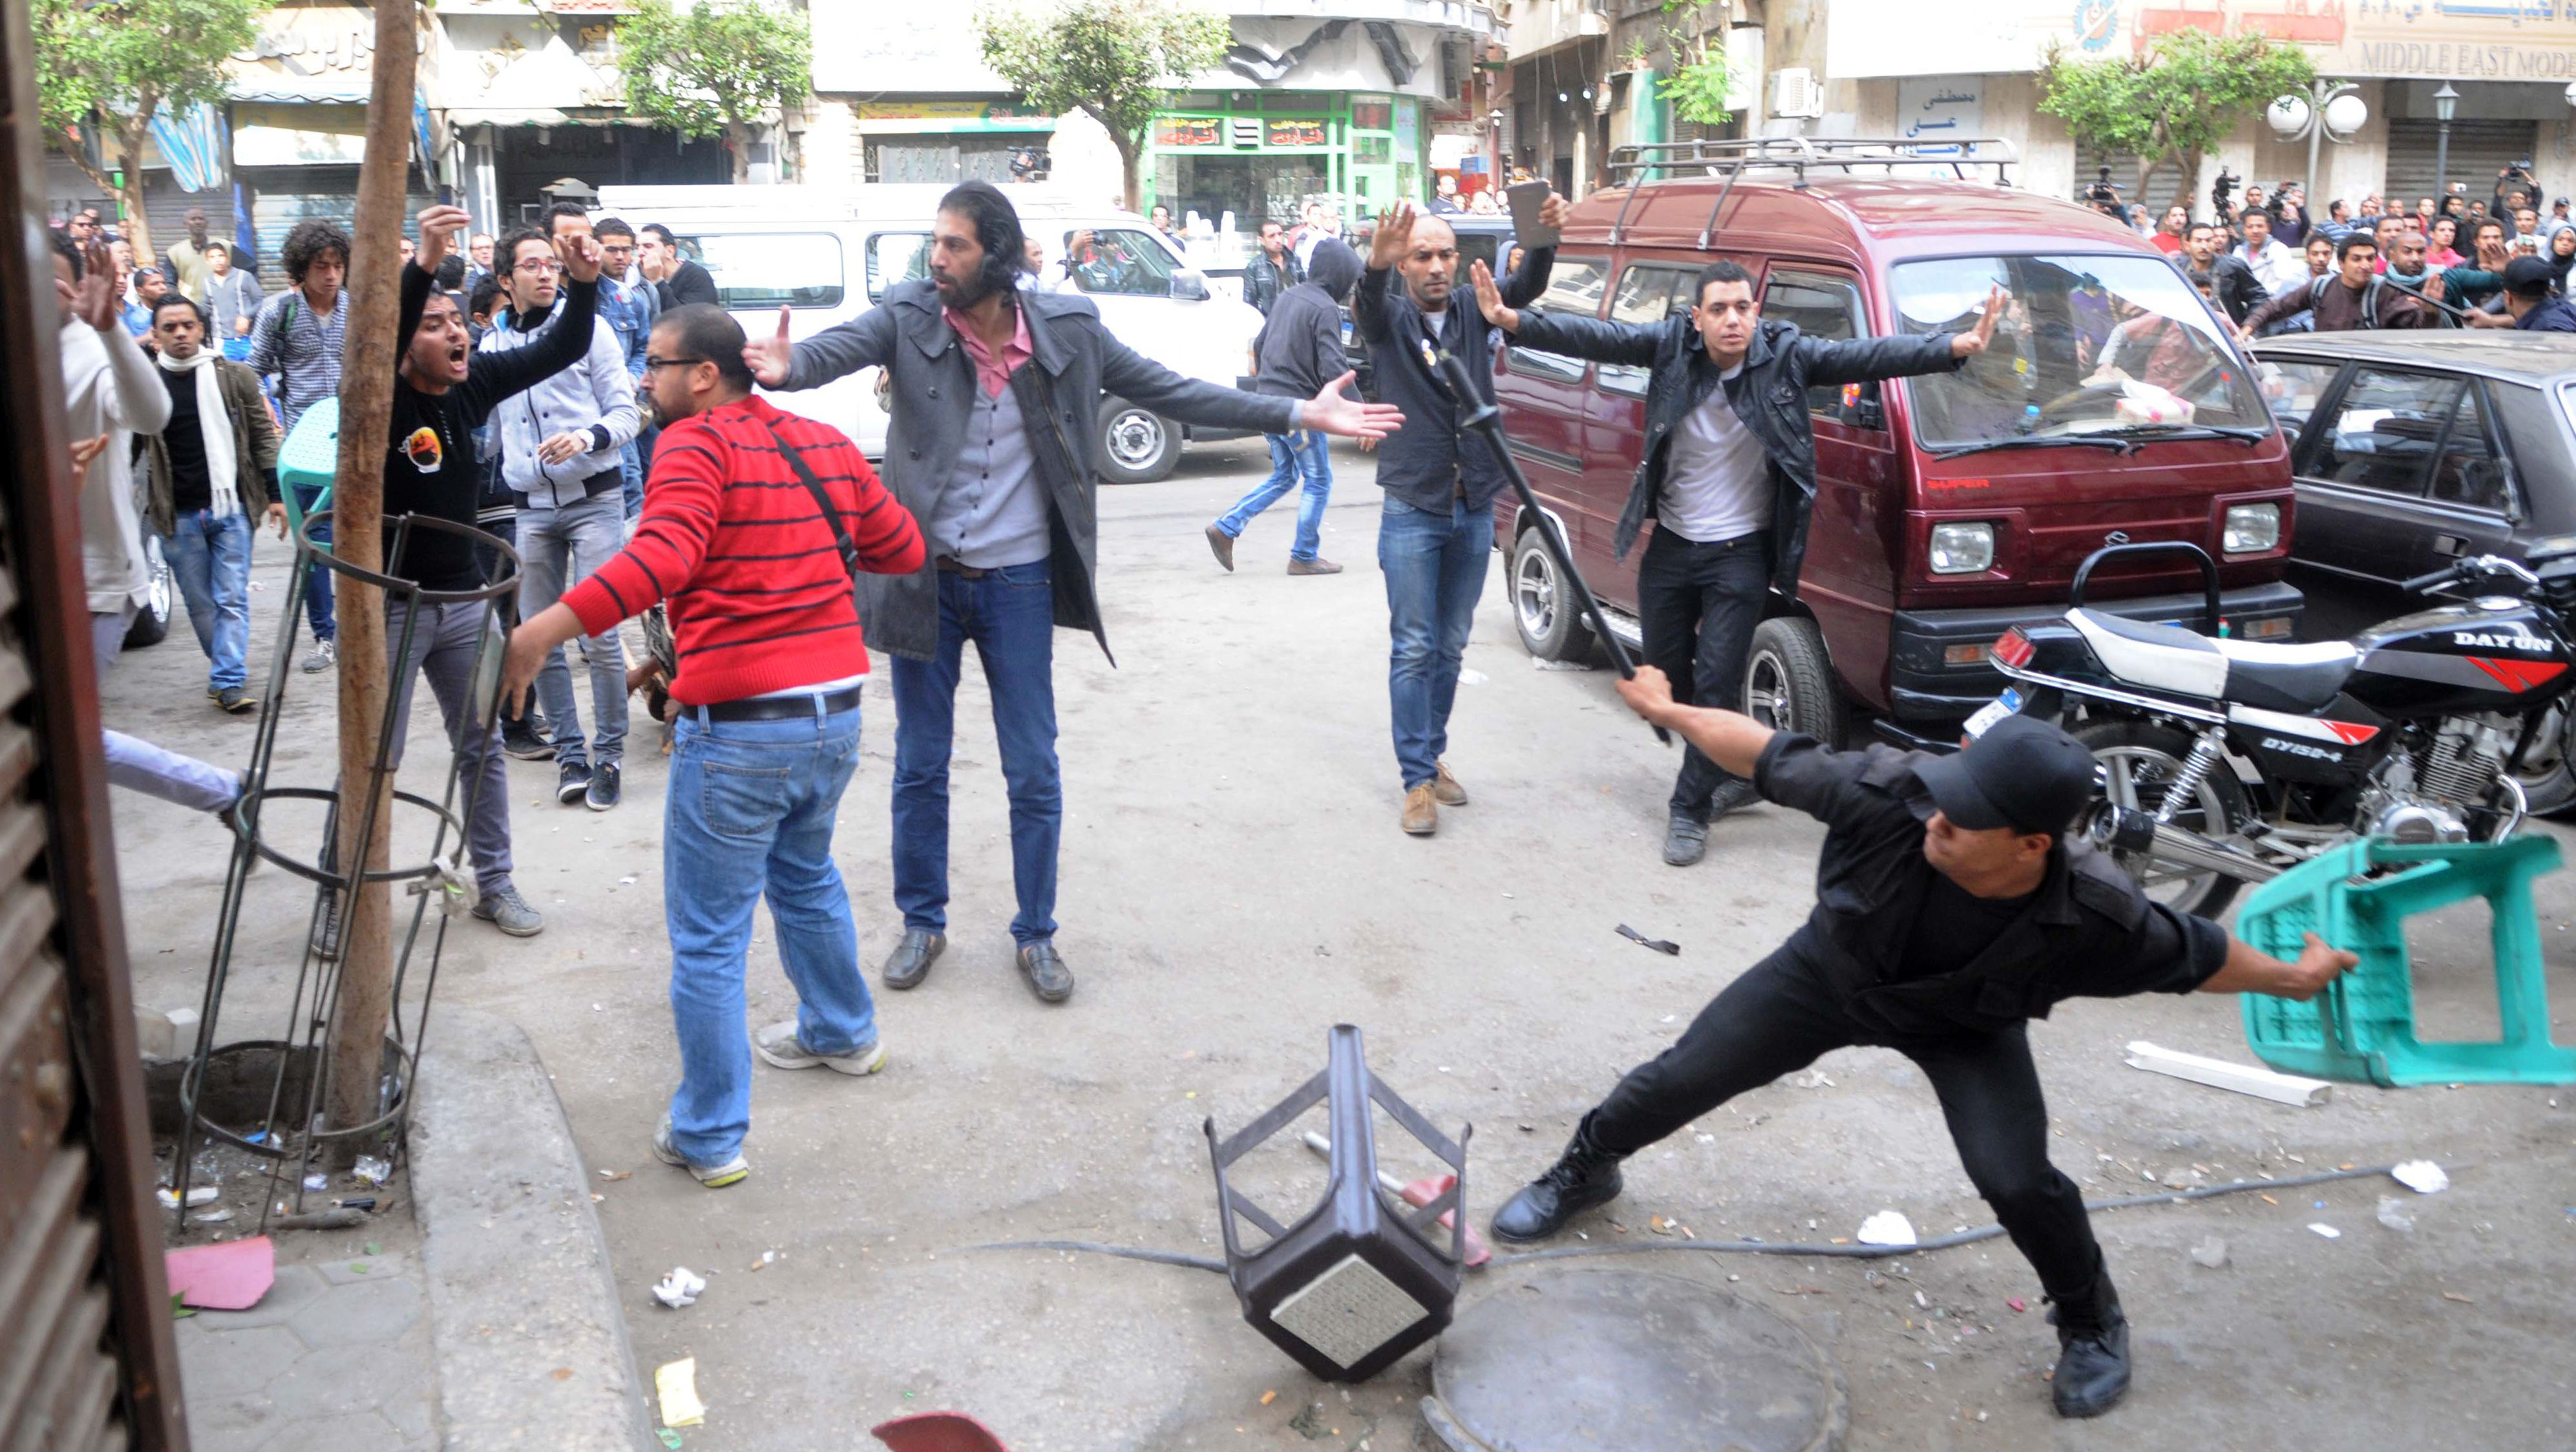 A member of Egyptian security forces throws a plastic stool during clashes with protesters who gathered in support of a prominent secular activist who turned himself after being ordered detained for holding a demonstration against a new protest law, on November 30, 2013 in the Egyptian capital, Cairo. Ahmed Maher, founder of the April 6 movement, one of the main groups that spearheaded the 2011 revolt against long-time ruler Hosni Mubarak, arrived at a Cairo court surrounded by dozens of supporters who chanted slogans demanding the release of other detained activists.    (AFP PHOTO STR)